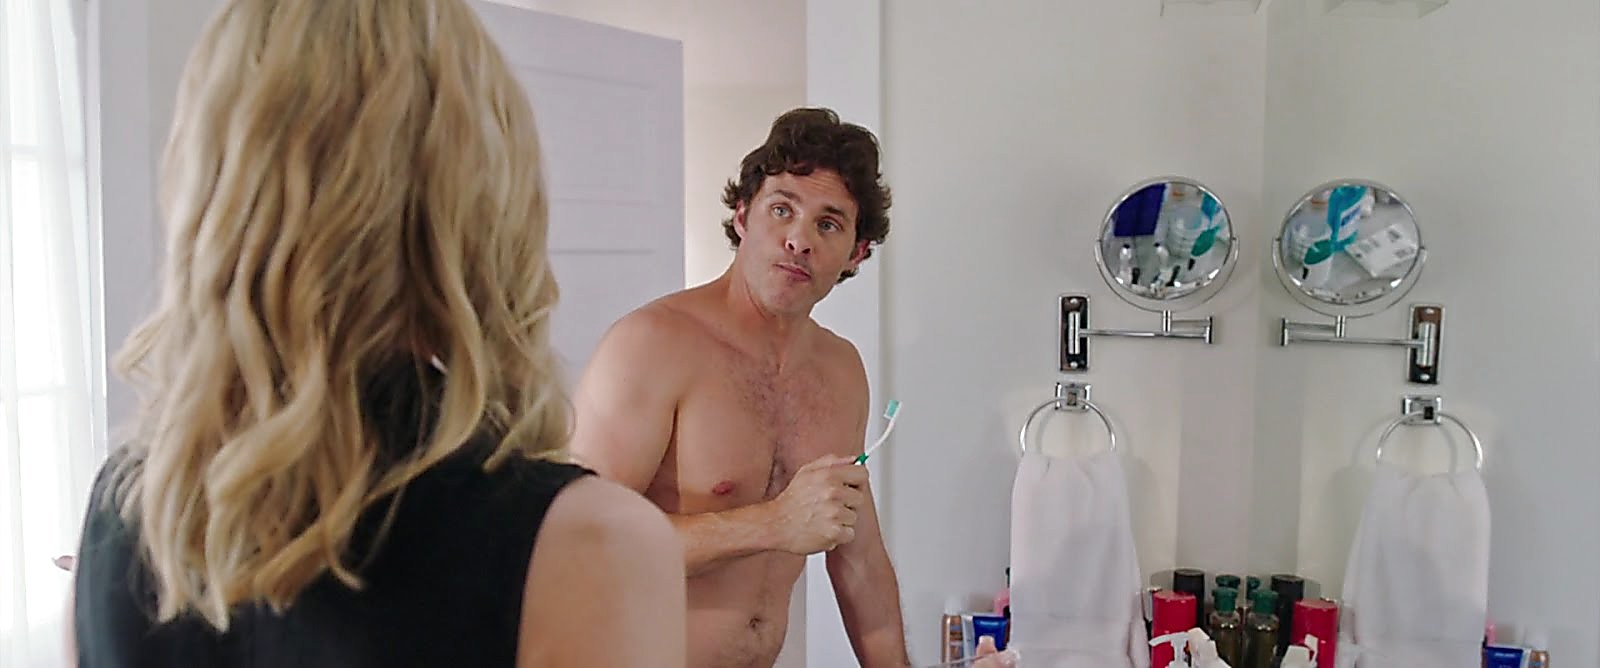 James Marsden sexy shirtless scene February 18, 2018, 11am